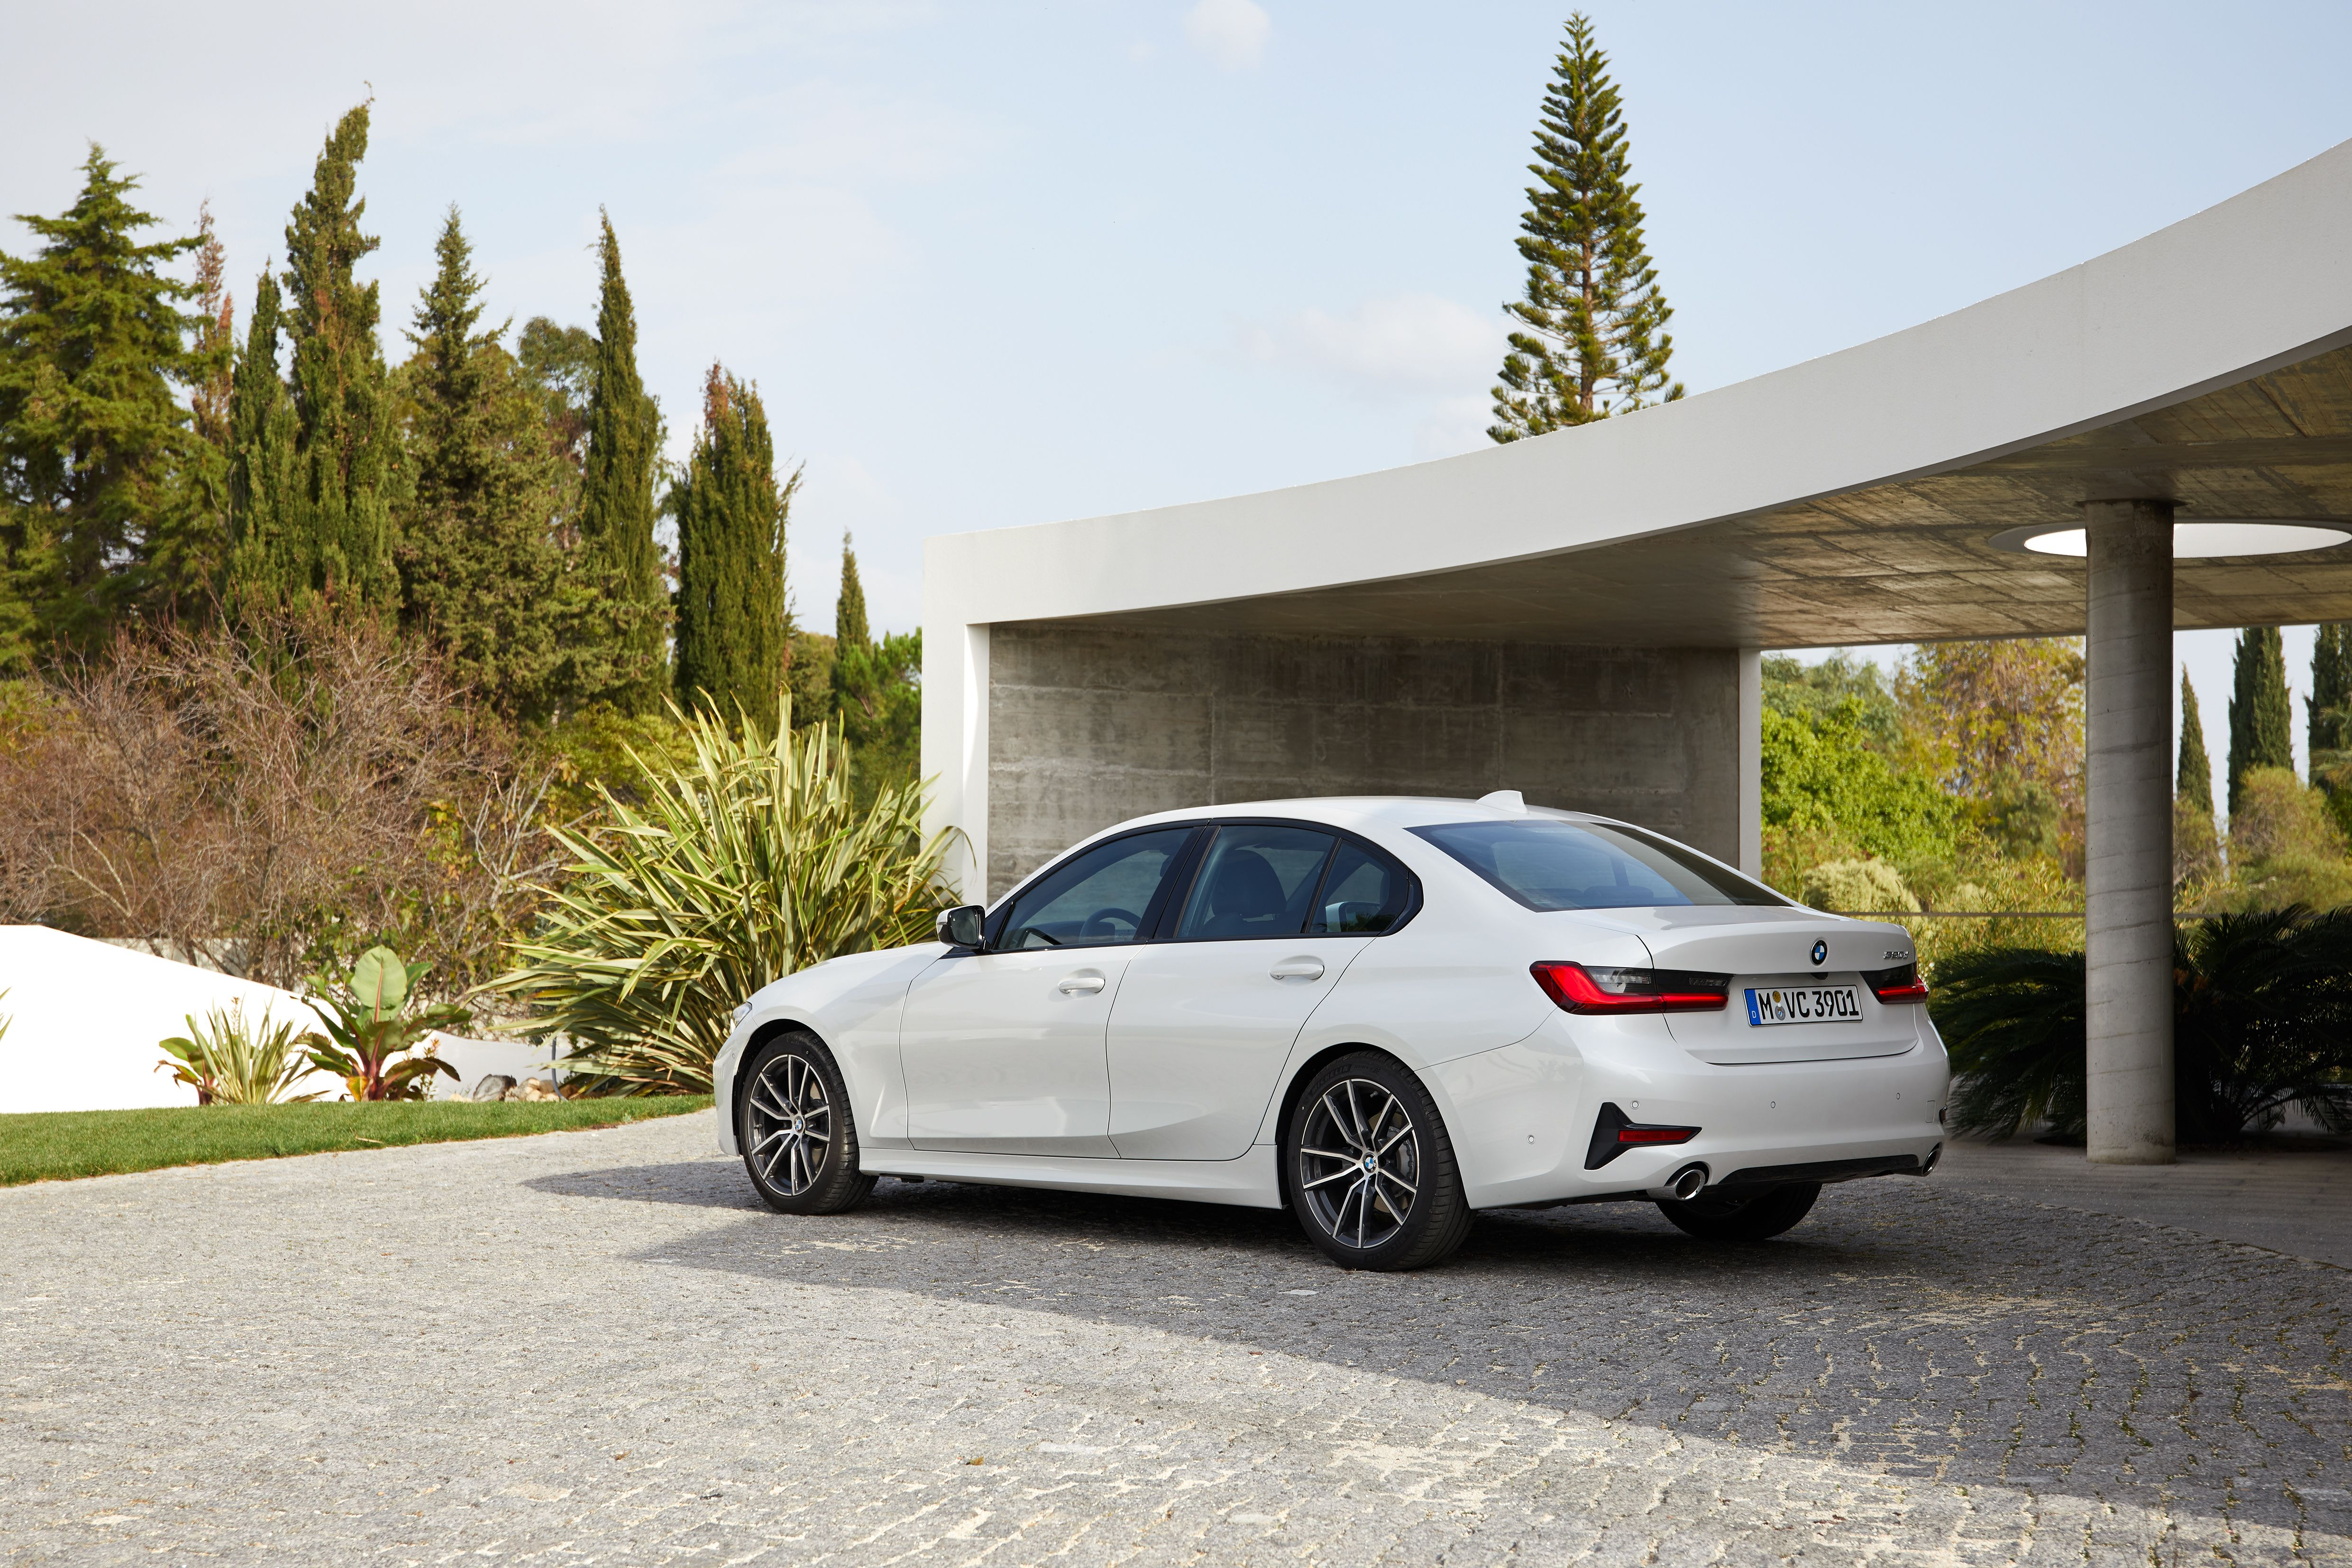 Pin By Bmw Life On About Car In 2020 Best Car Photo Bmw Bmw 320d